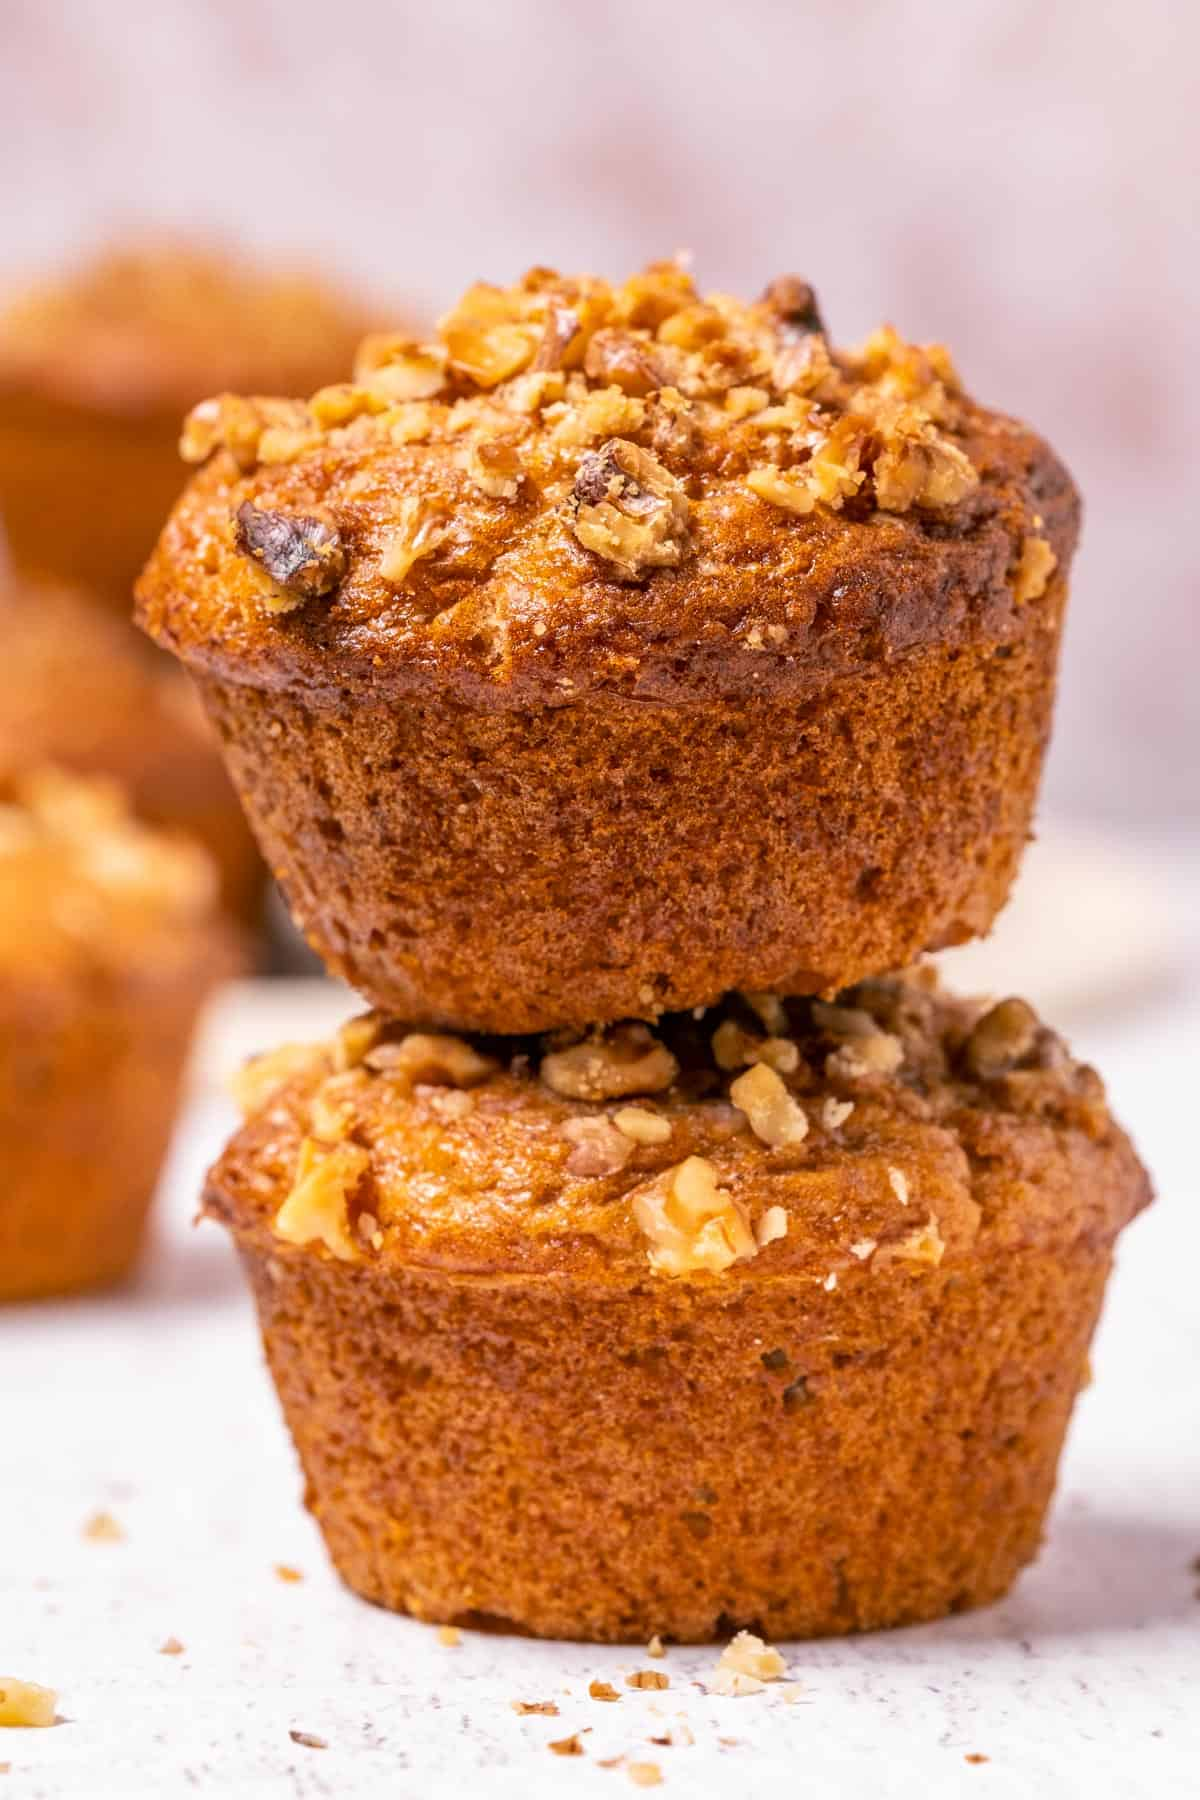 Stack of two banana bread muffins.